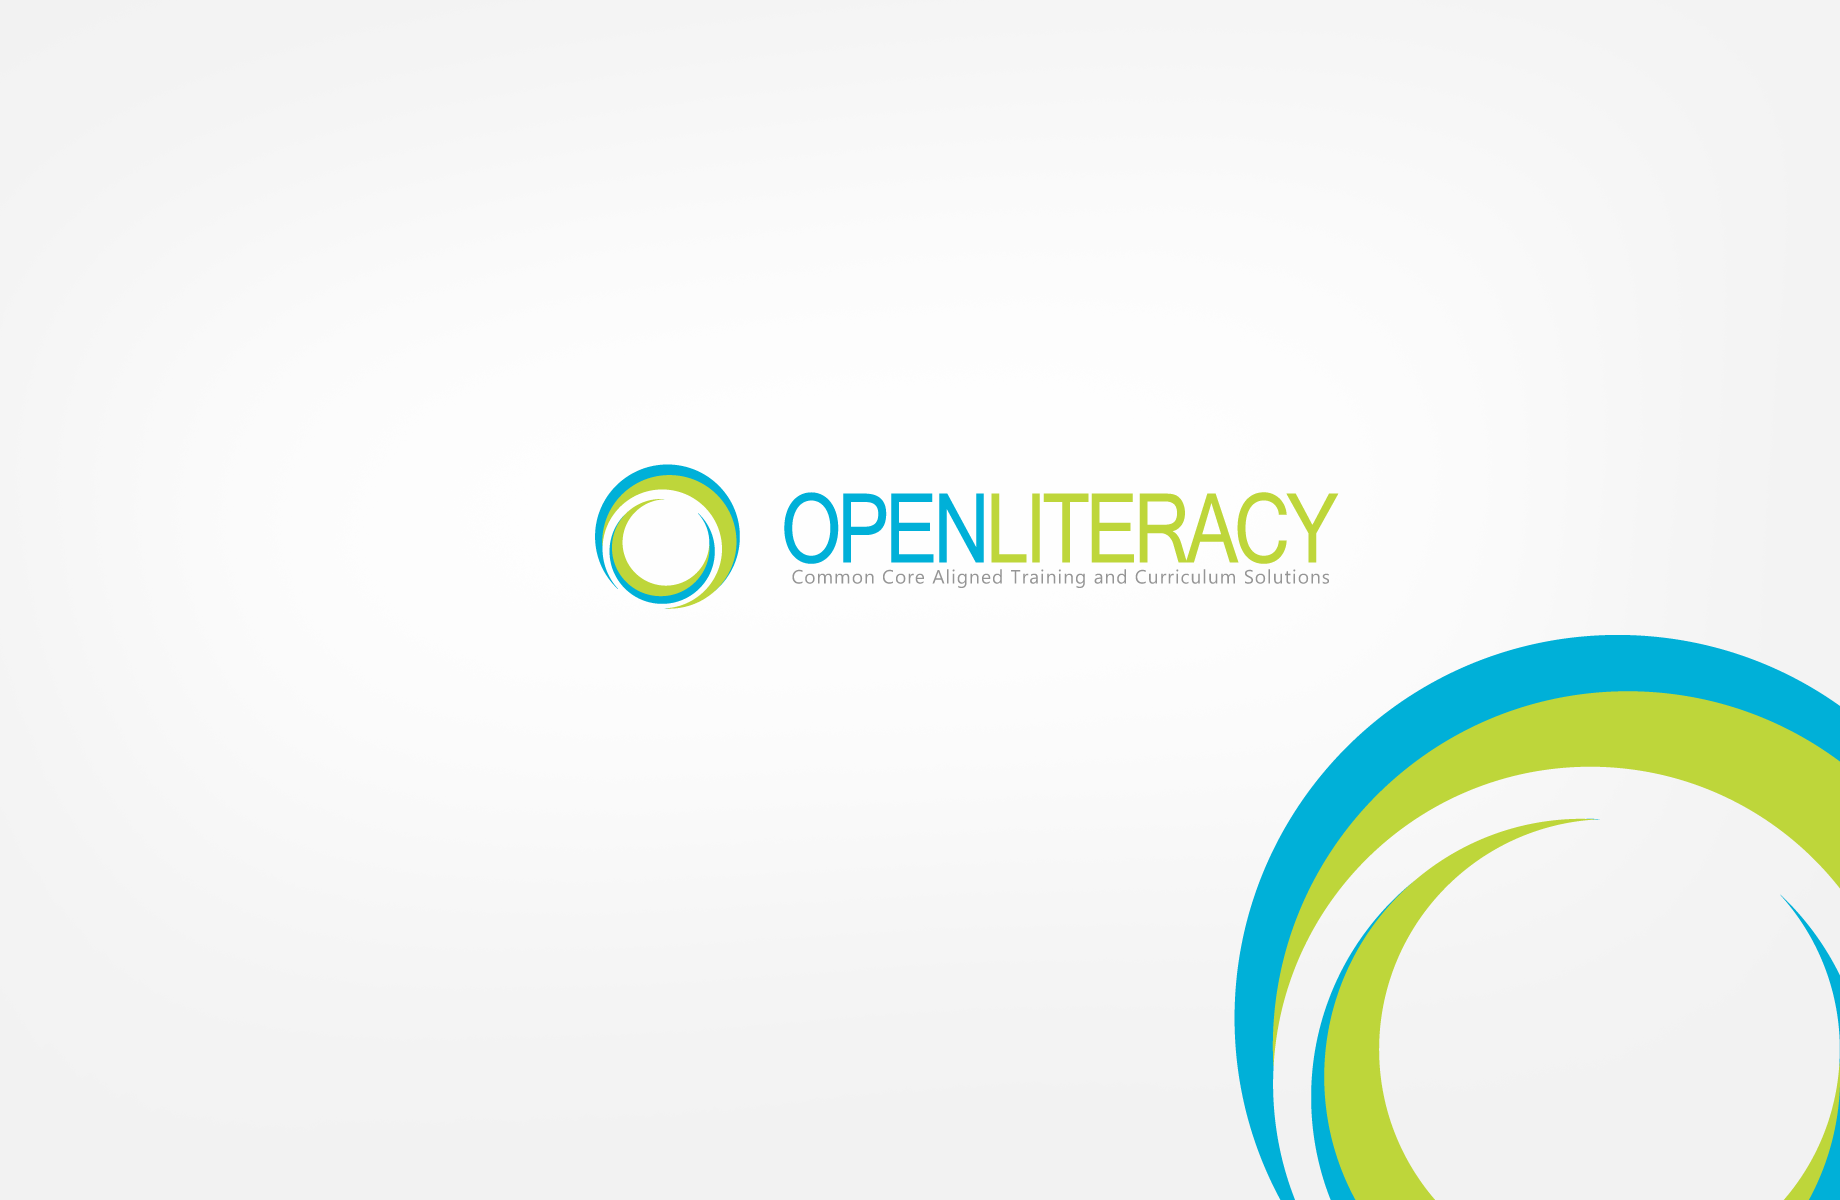 Logo Design by Jan Chua - Entry No. 25 in the Logo Design Contest Inspiring Logo Design for OpenLiteracy.